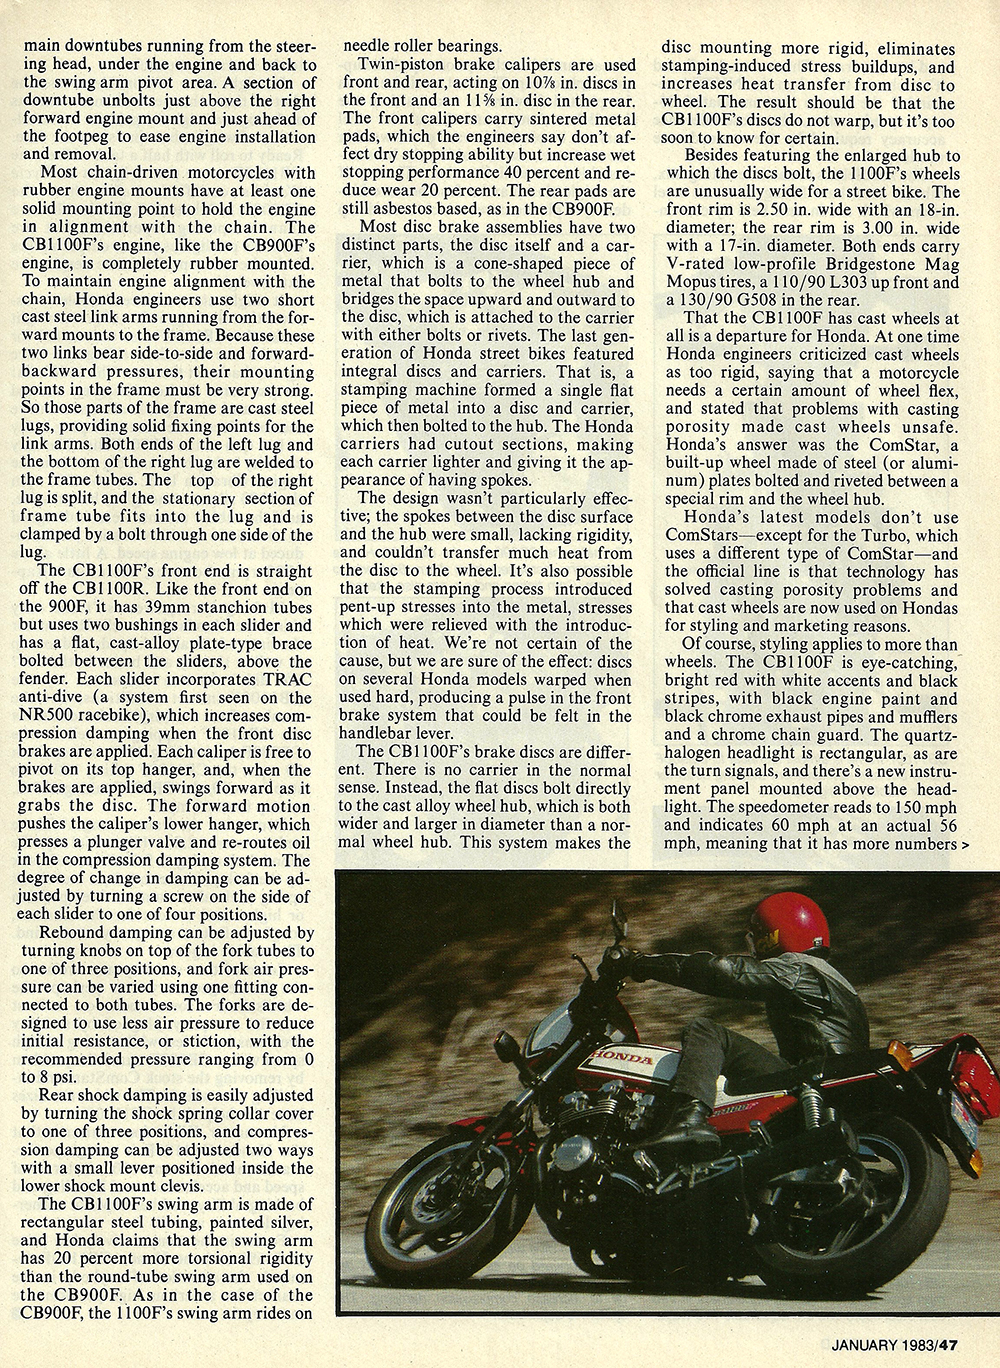 1983 Honda CB1100F road test 04.jpg